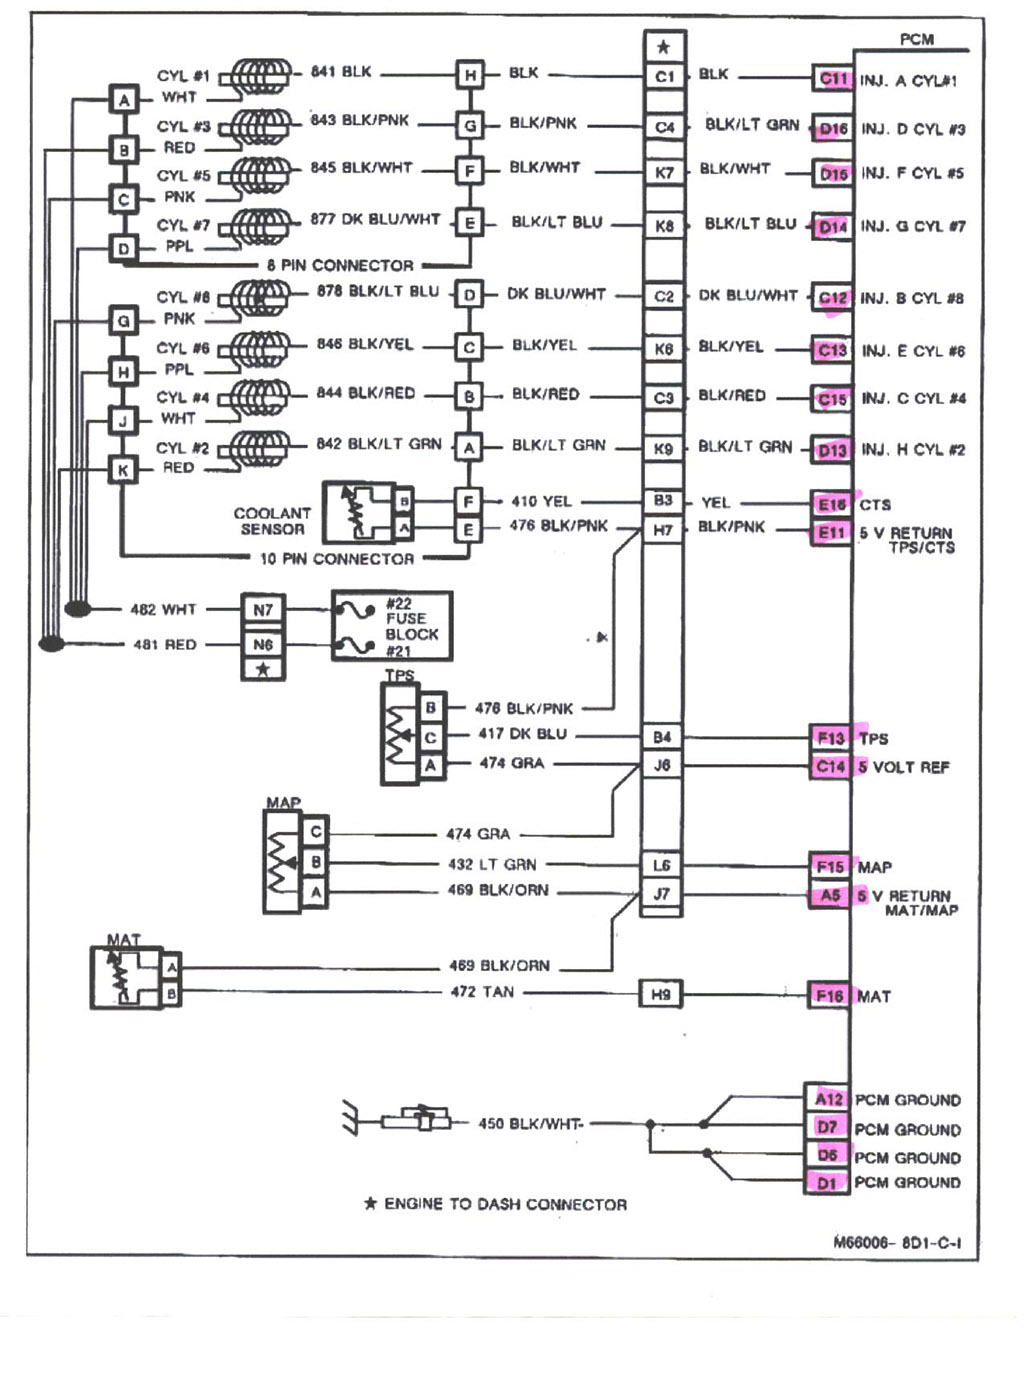 Check The Pcm Power Relay And Fuses 34 And 101 On The Fuse Box Let Me